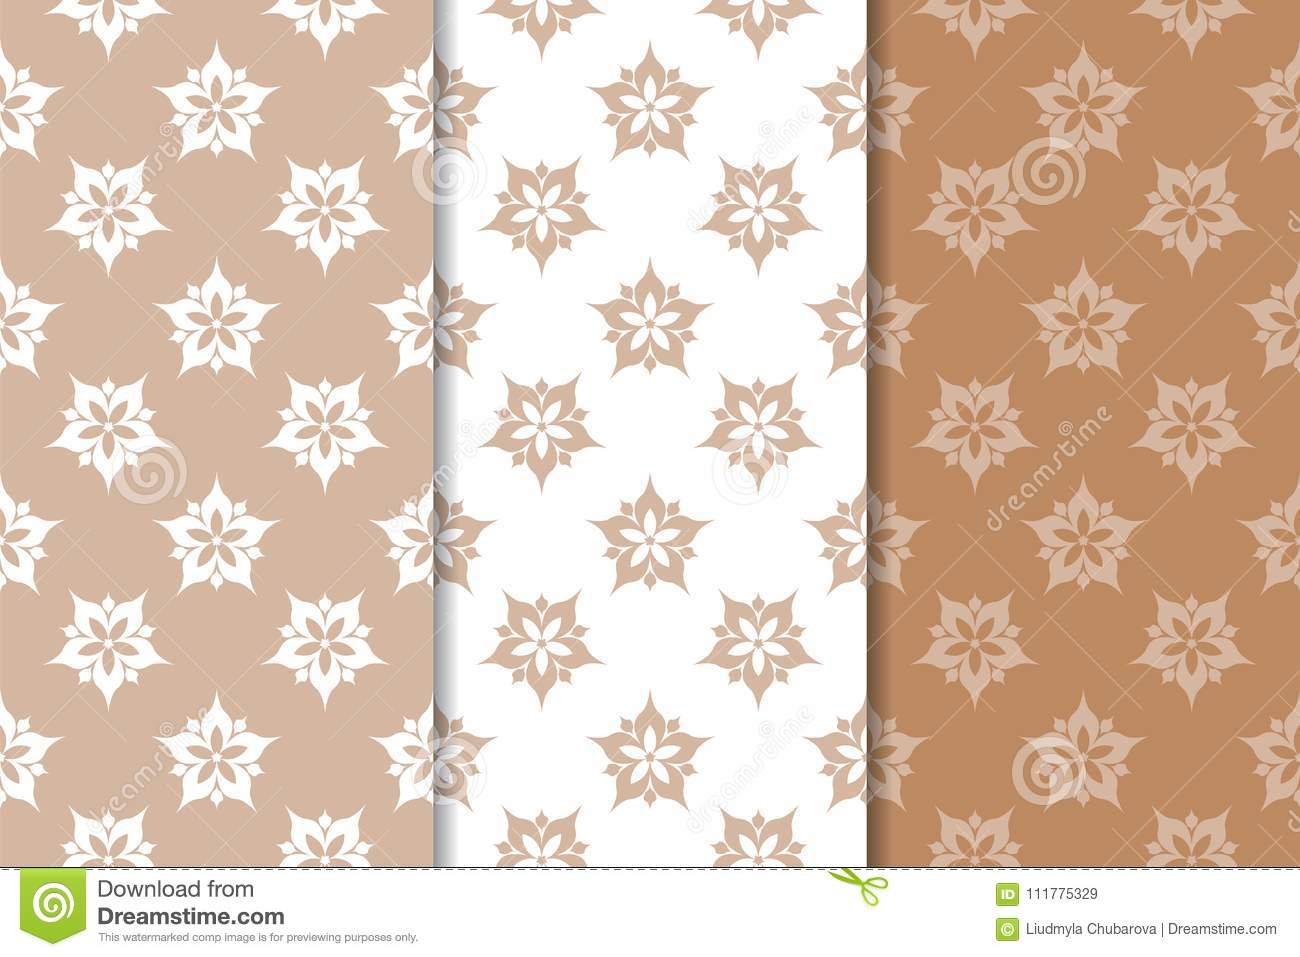 Brown floral backgrounds. Set of seamless patterns